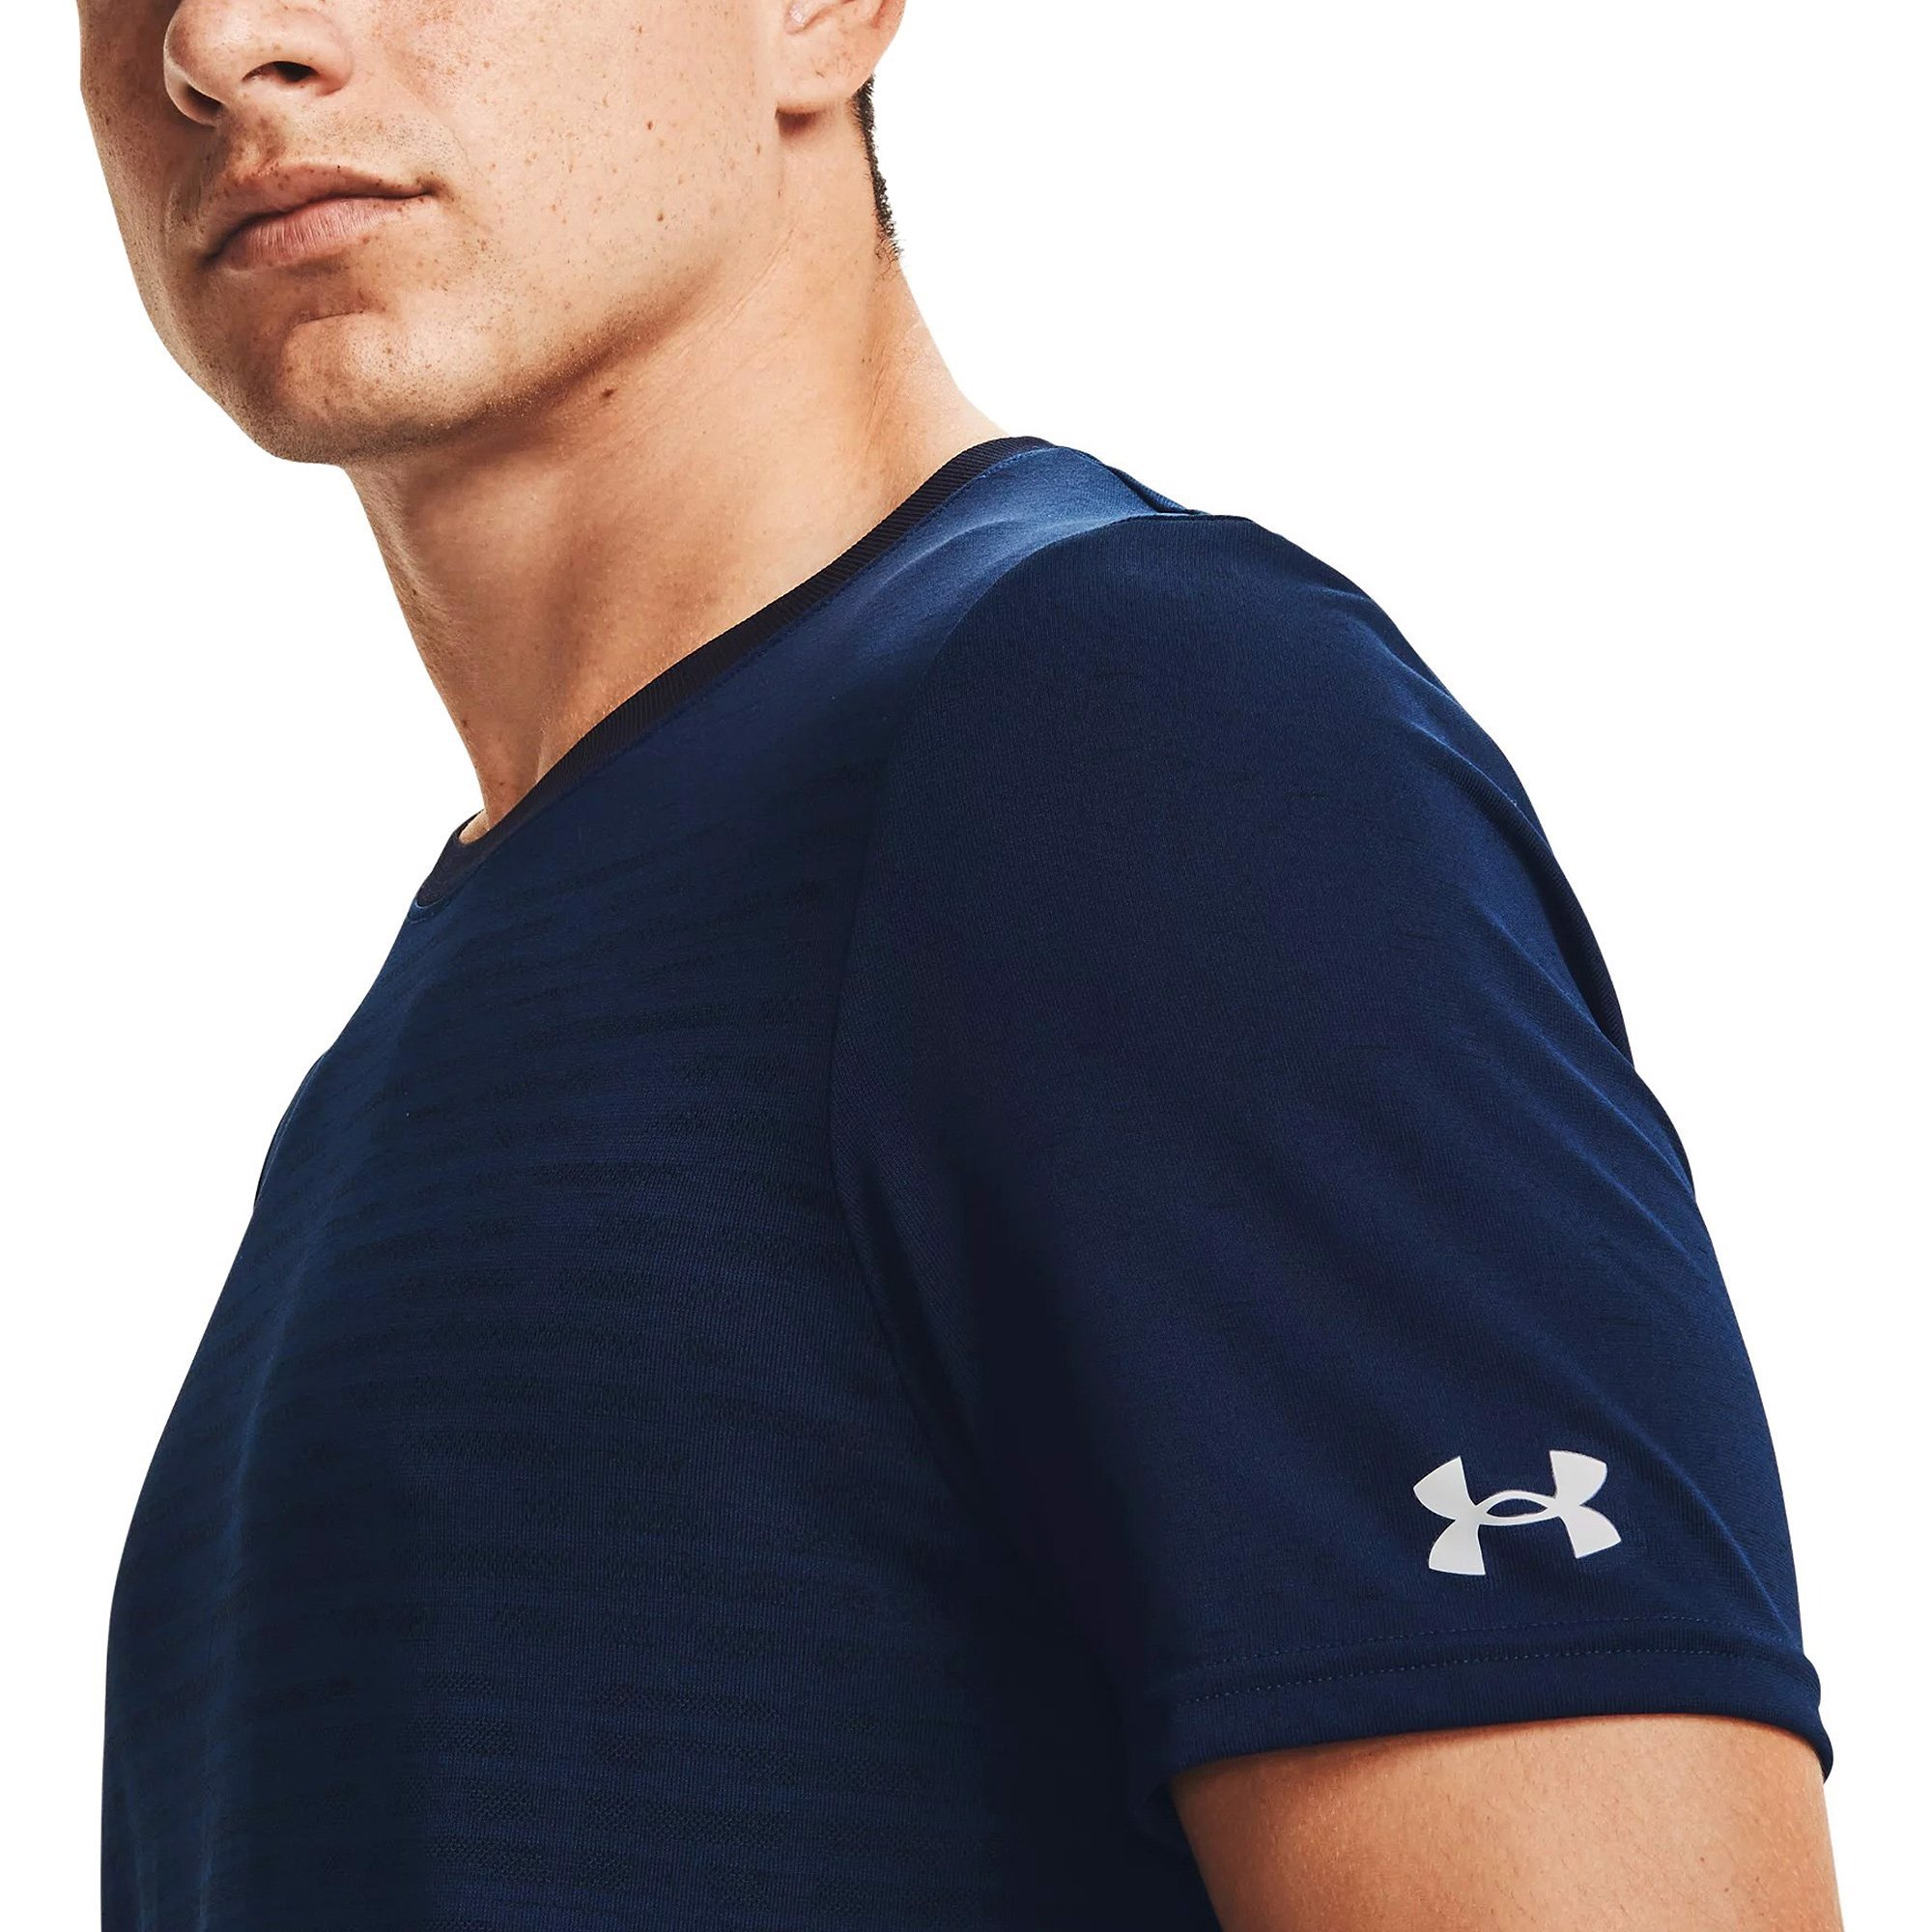 Under Armour - Áo thun nam Tee Seamless Wordmark Training SS21-1361